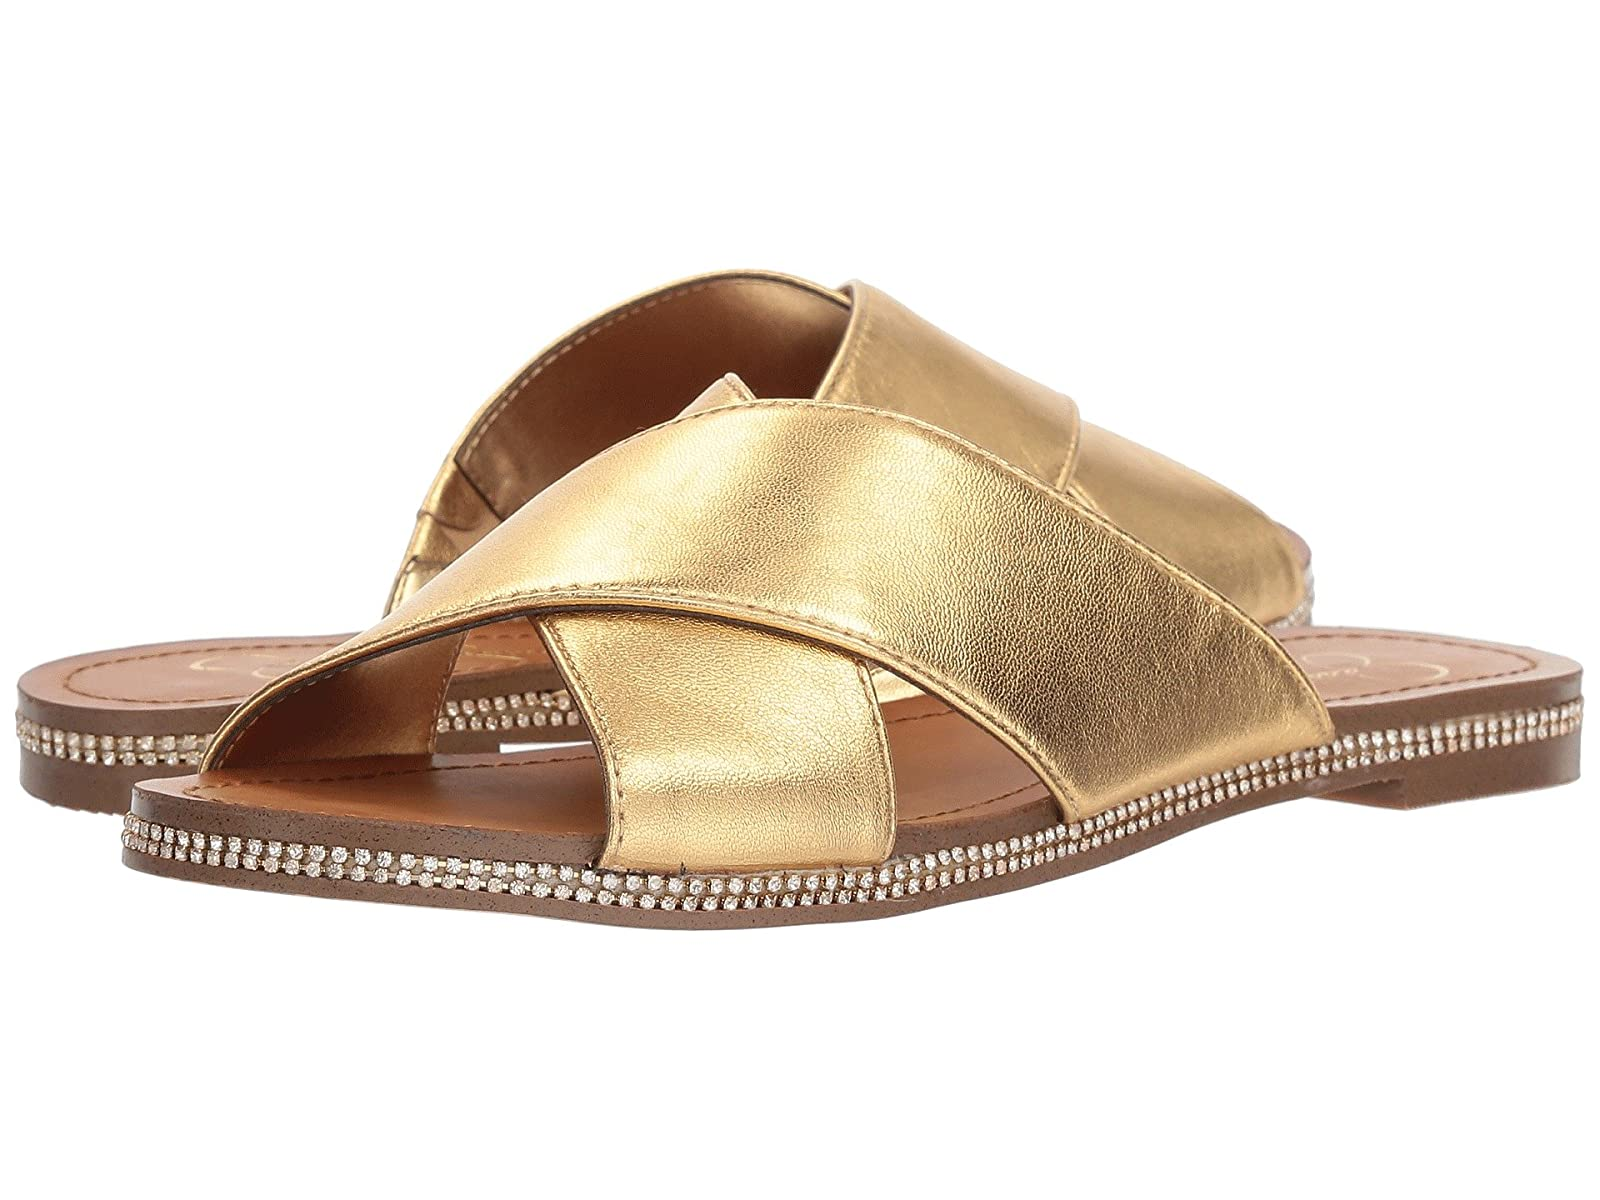 Jessica Simpson BrinellaCheap and distinctive eye-catching shoes